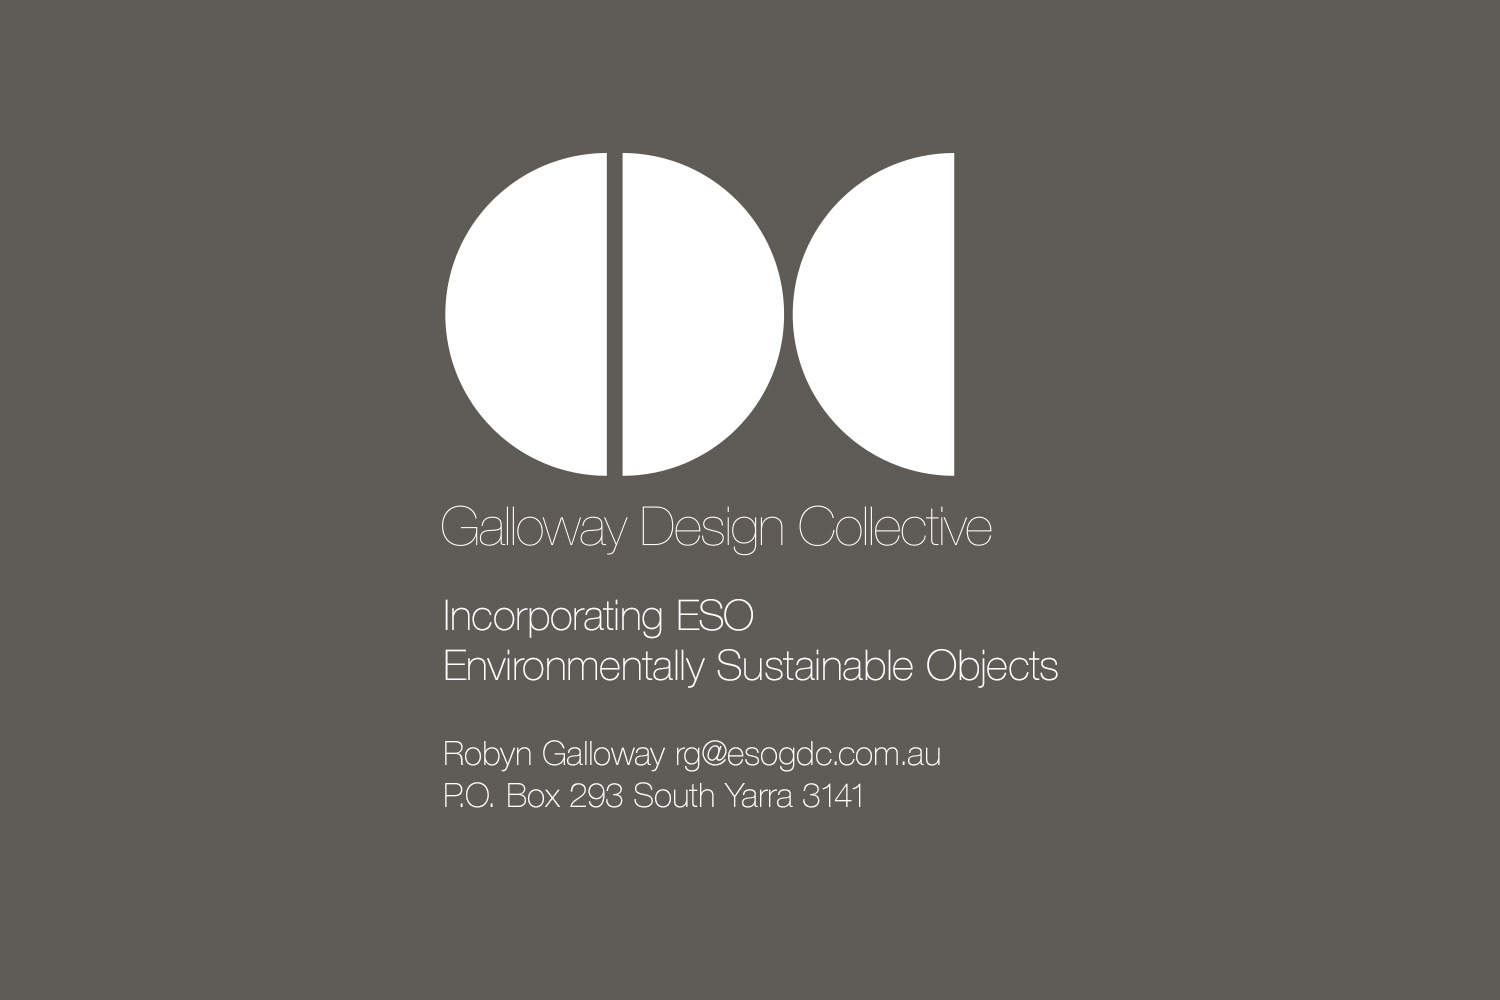 Galloway Design Collective. Incorporating ESO, Environmantally Sustainable Objects. Robyn Galloway.